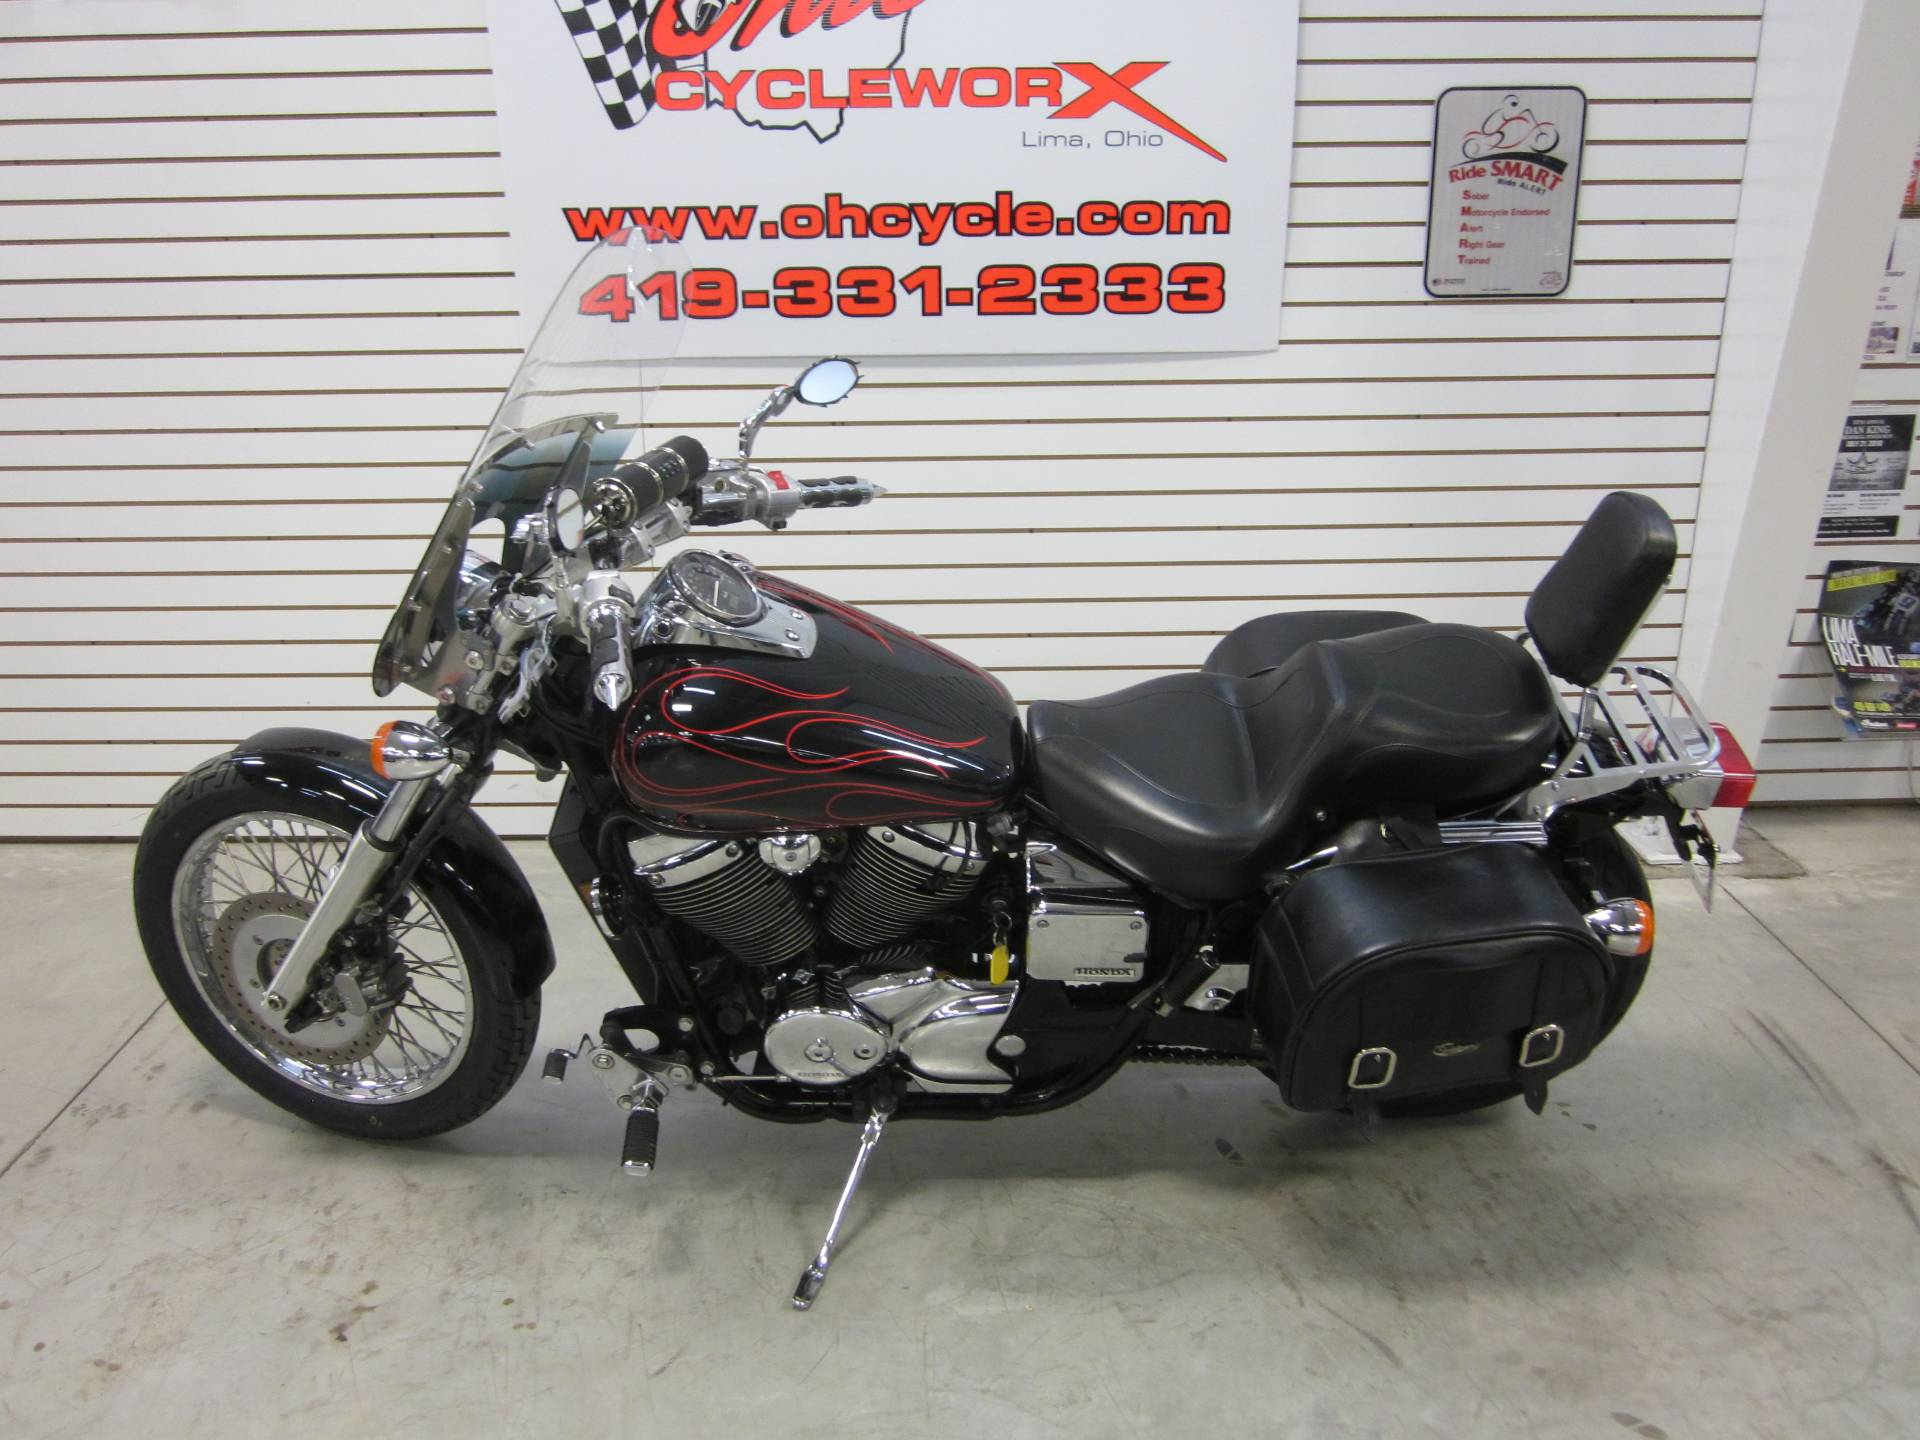 2007 Honda Spirit 750 in Lima, Ohio - Photo 12